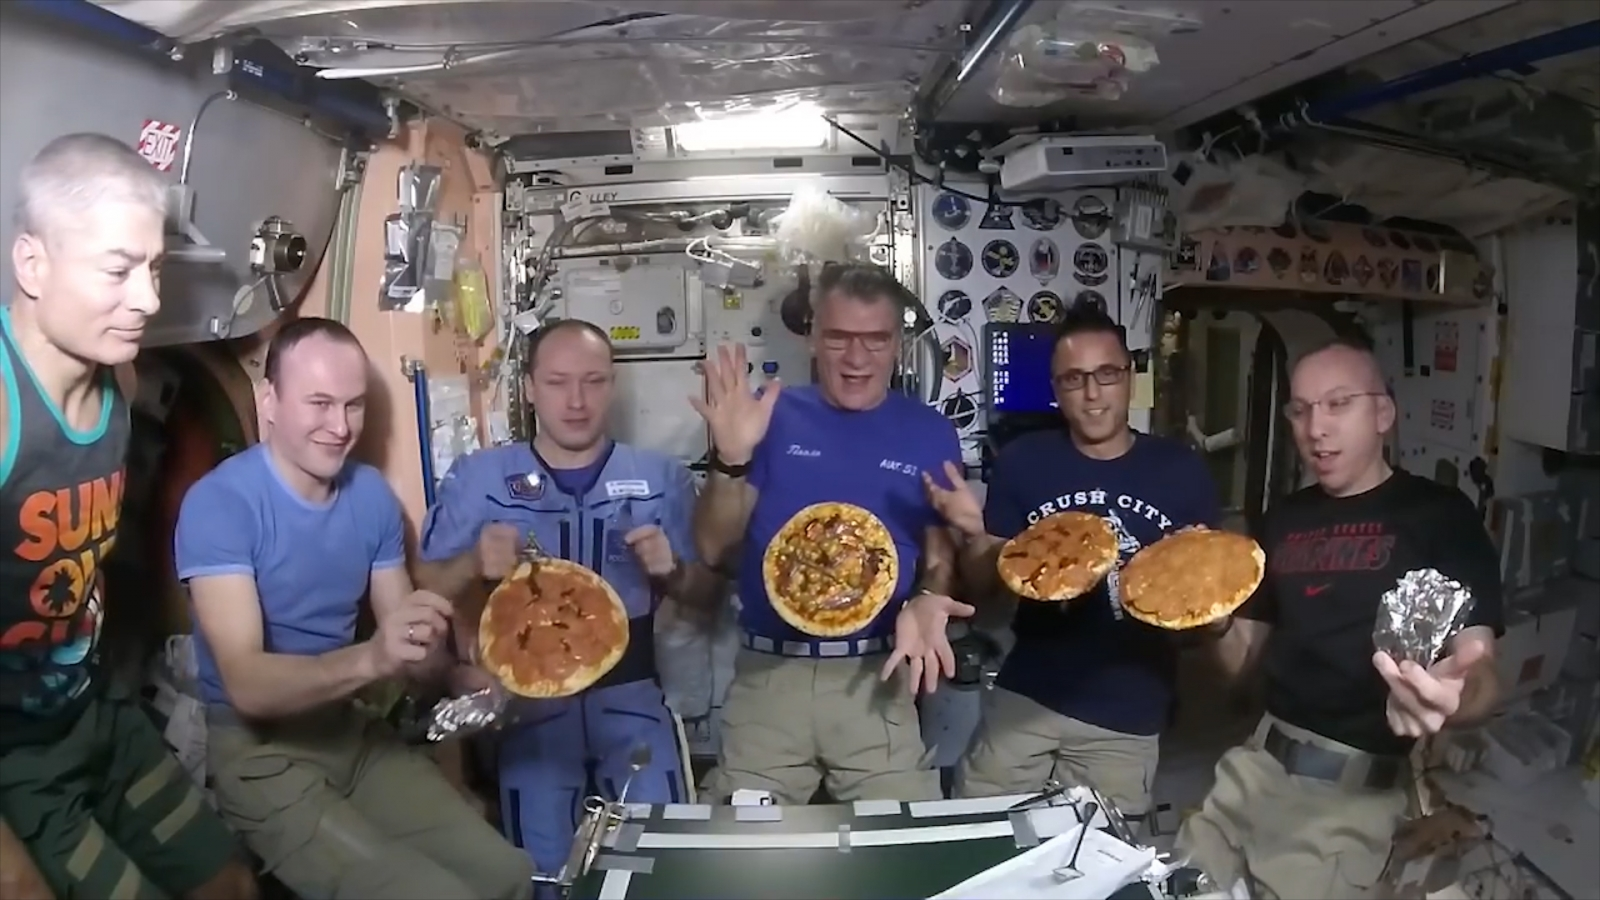 iss-astronauts-display-how-to-construct-a-pizza-in-zero-gravity